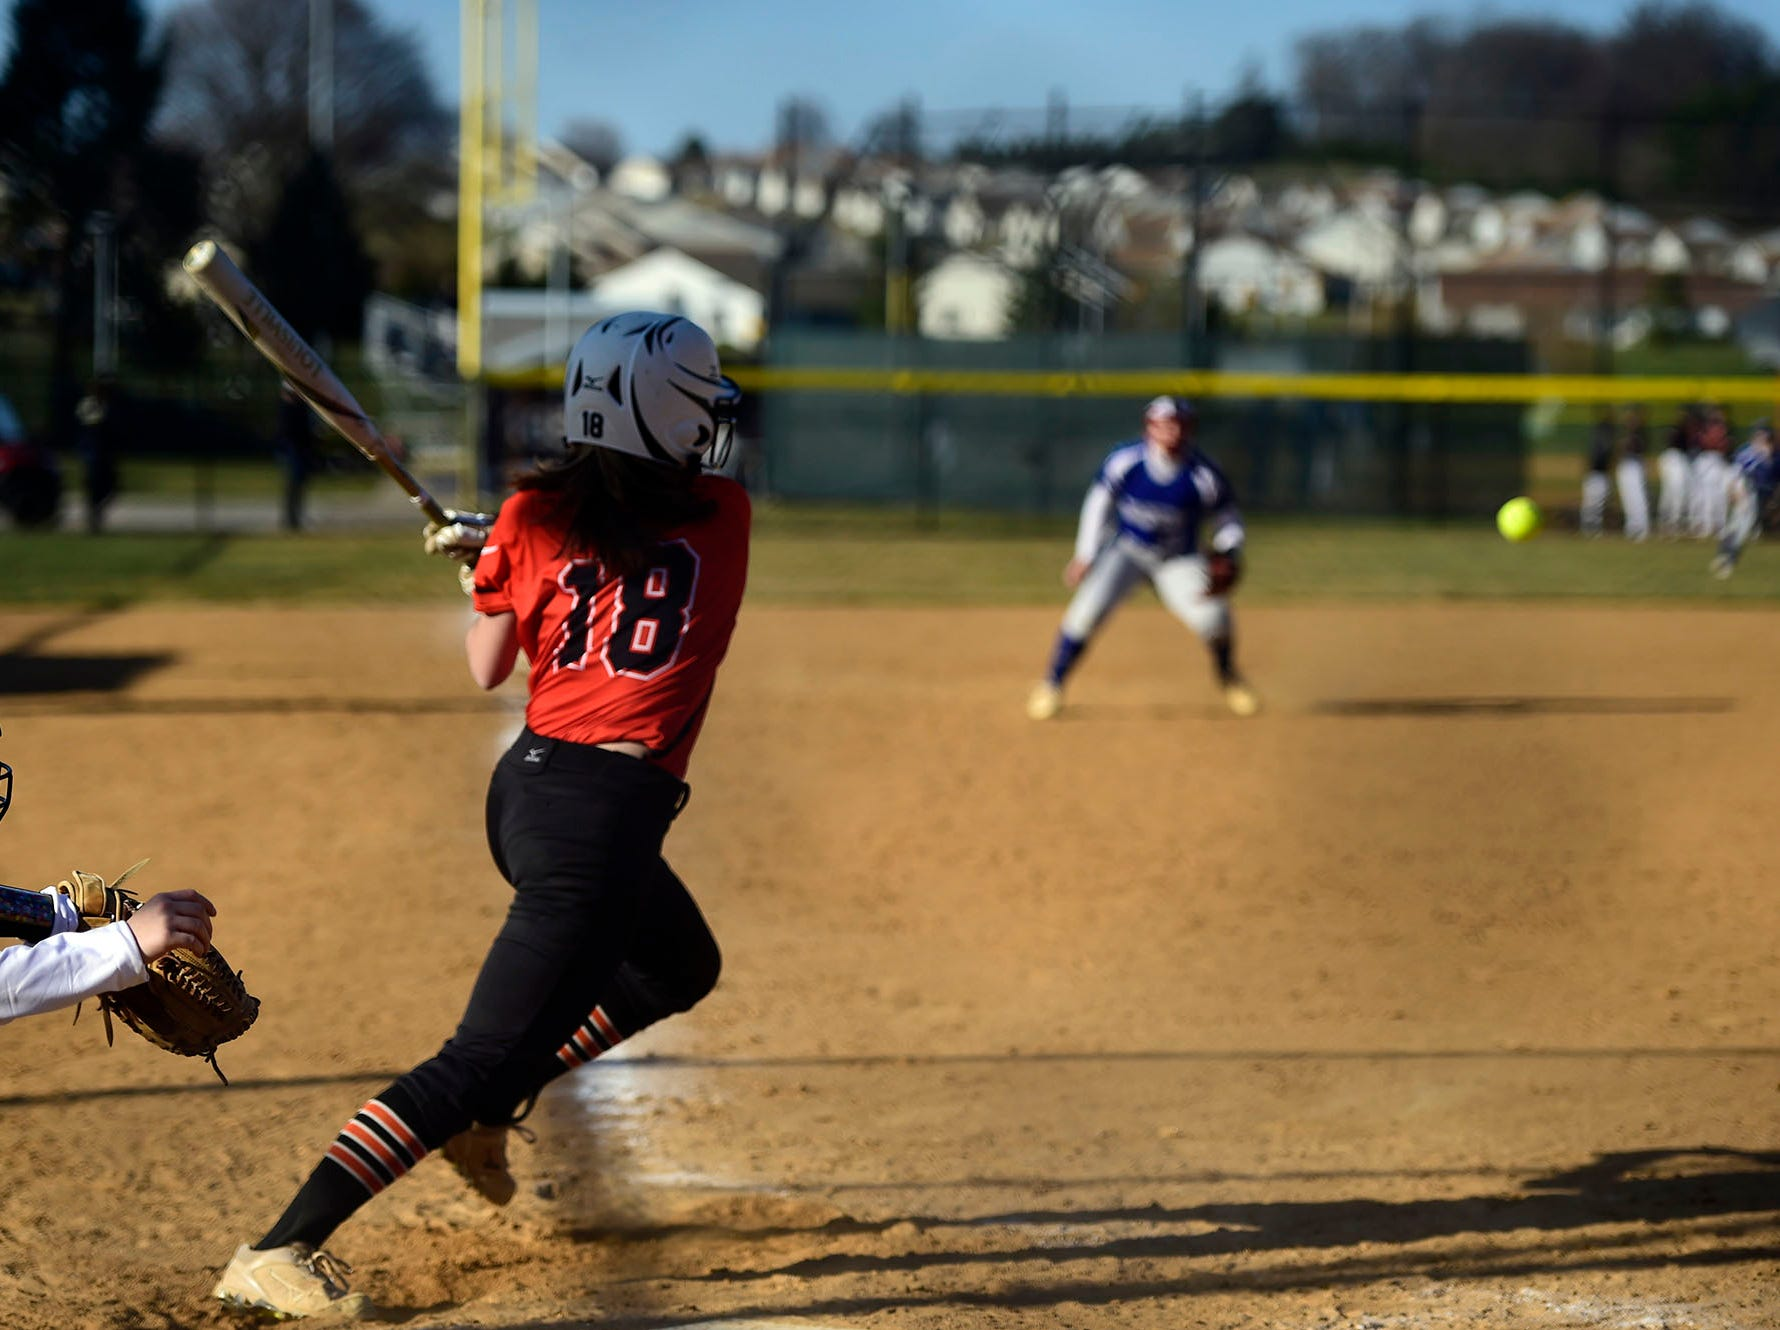 Northeastern's Peyton Eckenrode puts the ball in play on the left side of the infield Wednesday, April 3, 2019. Eckenrode went 3-for-4 with three runs scored and four RBIs during Spring Grove's 19-14 victory.